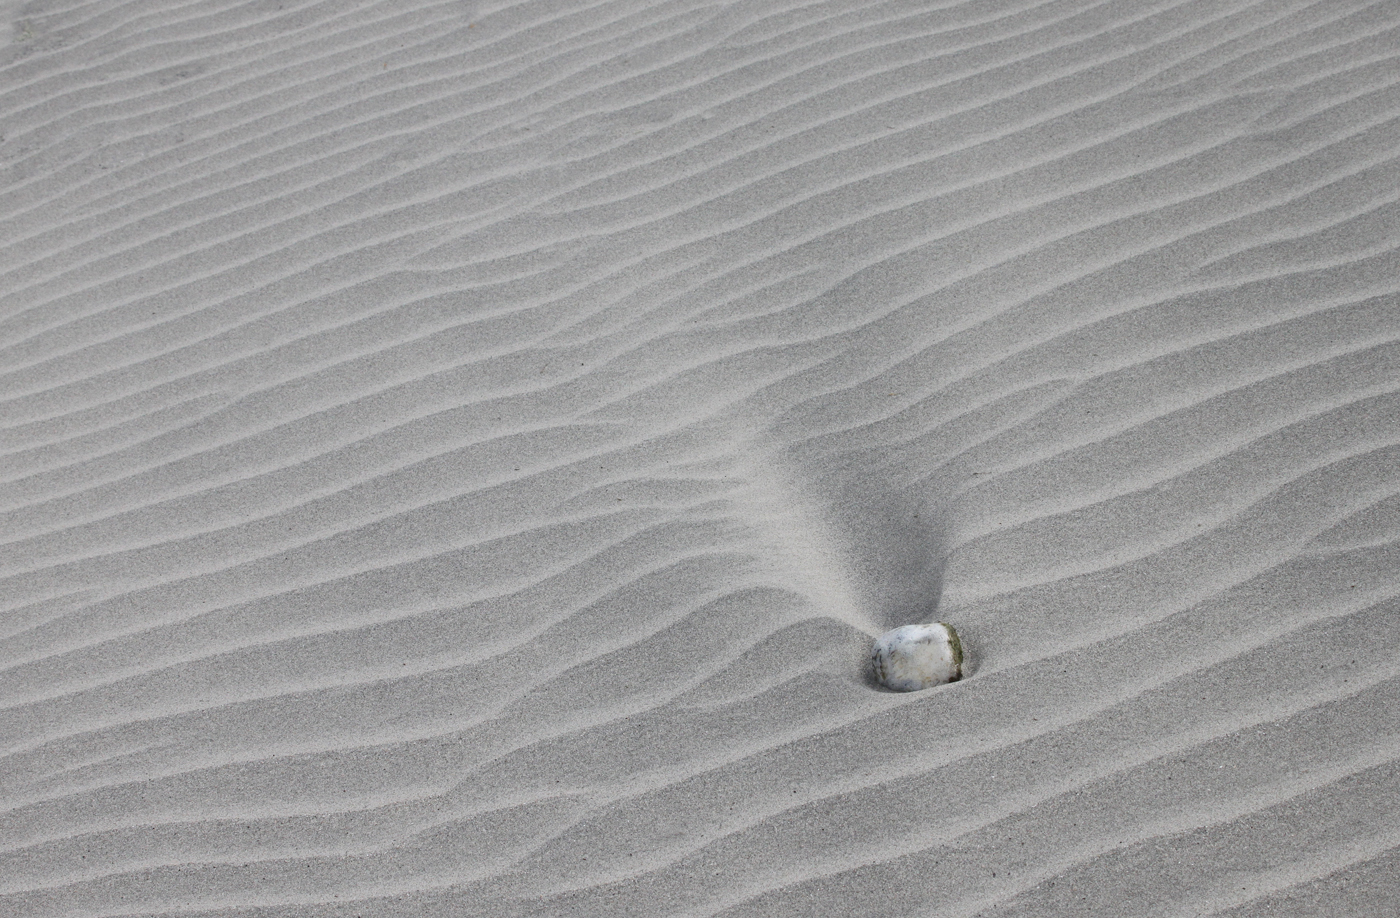 WIND AND SAND by Neil Griffin